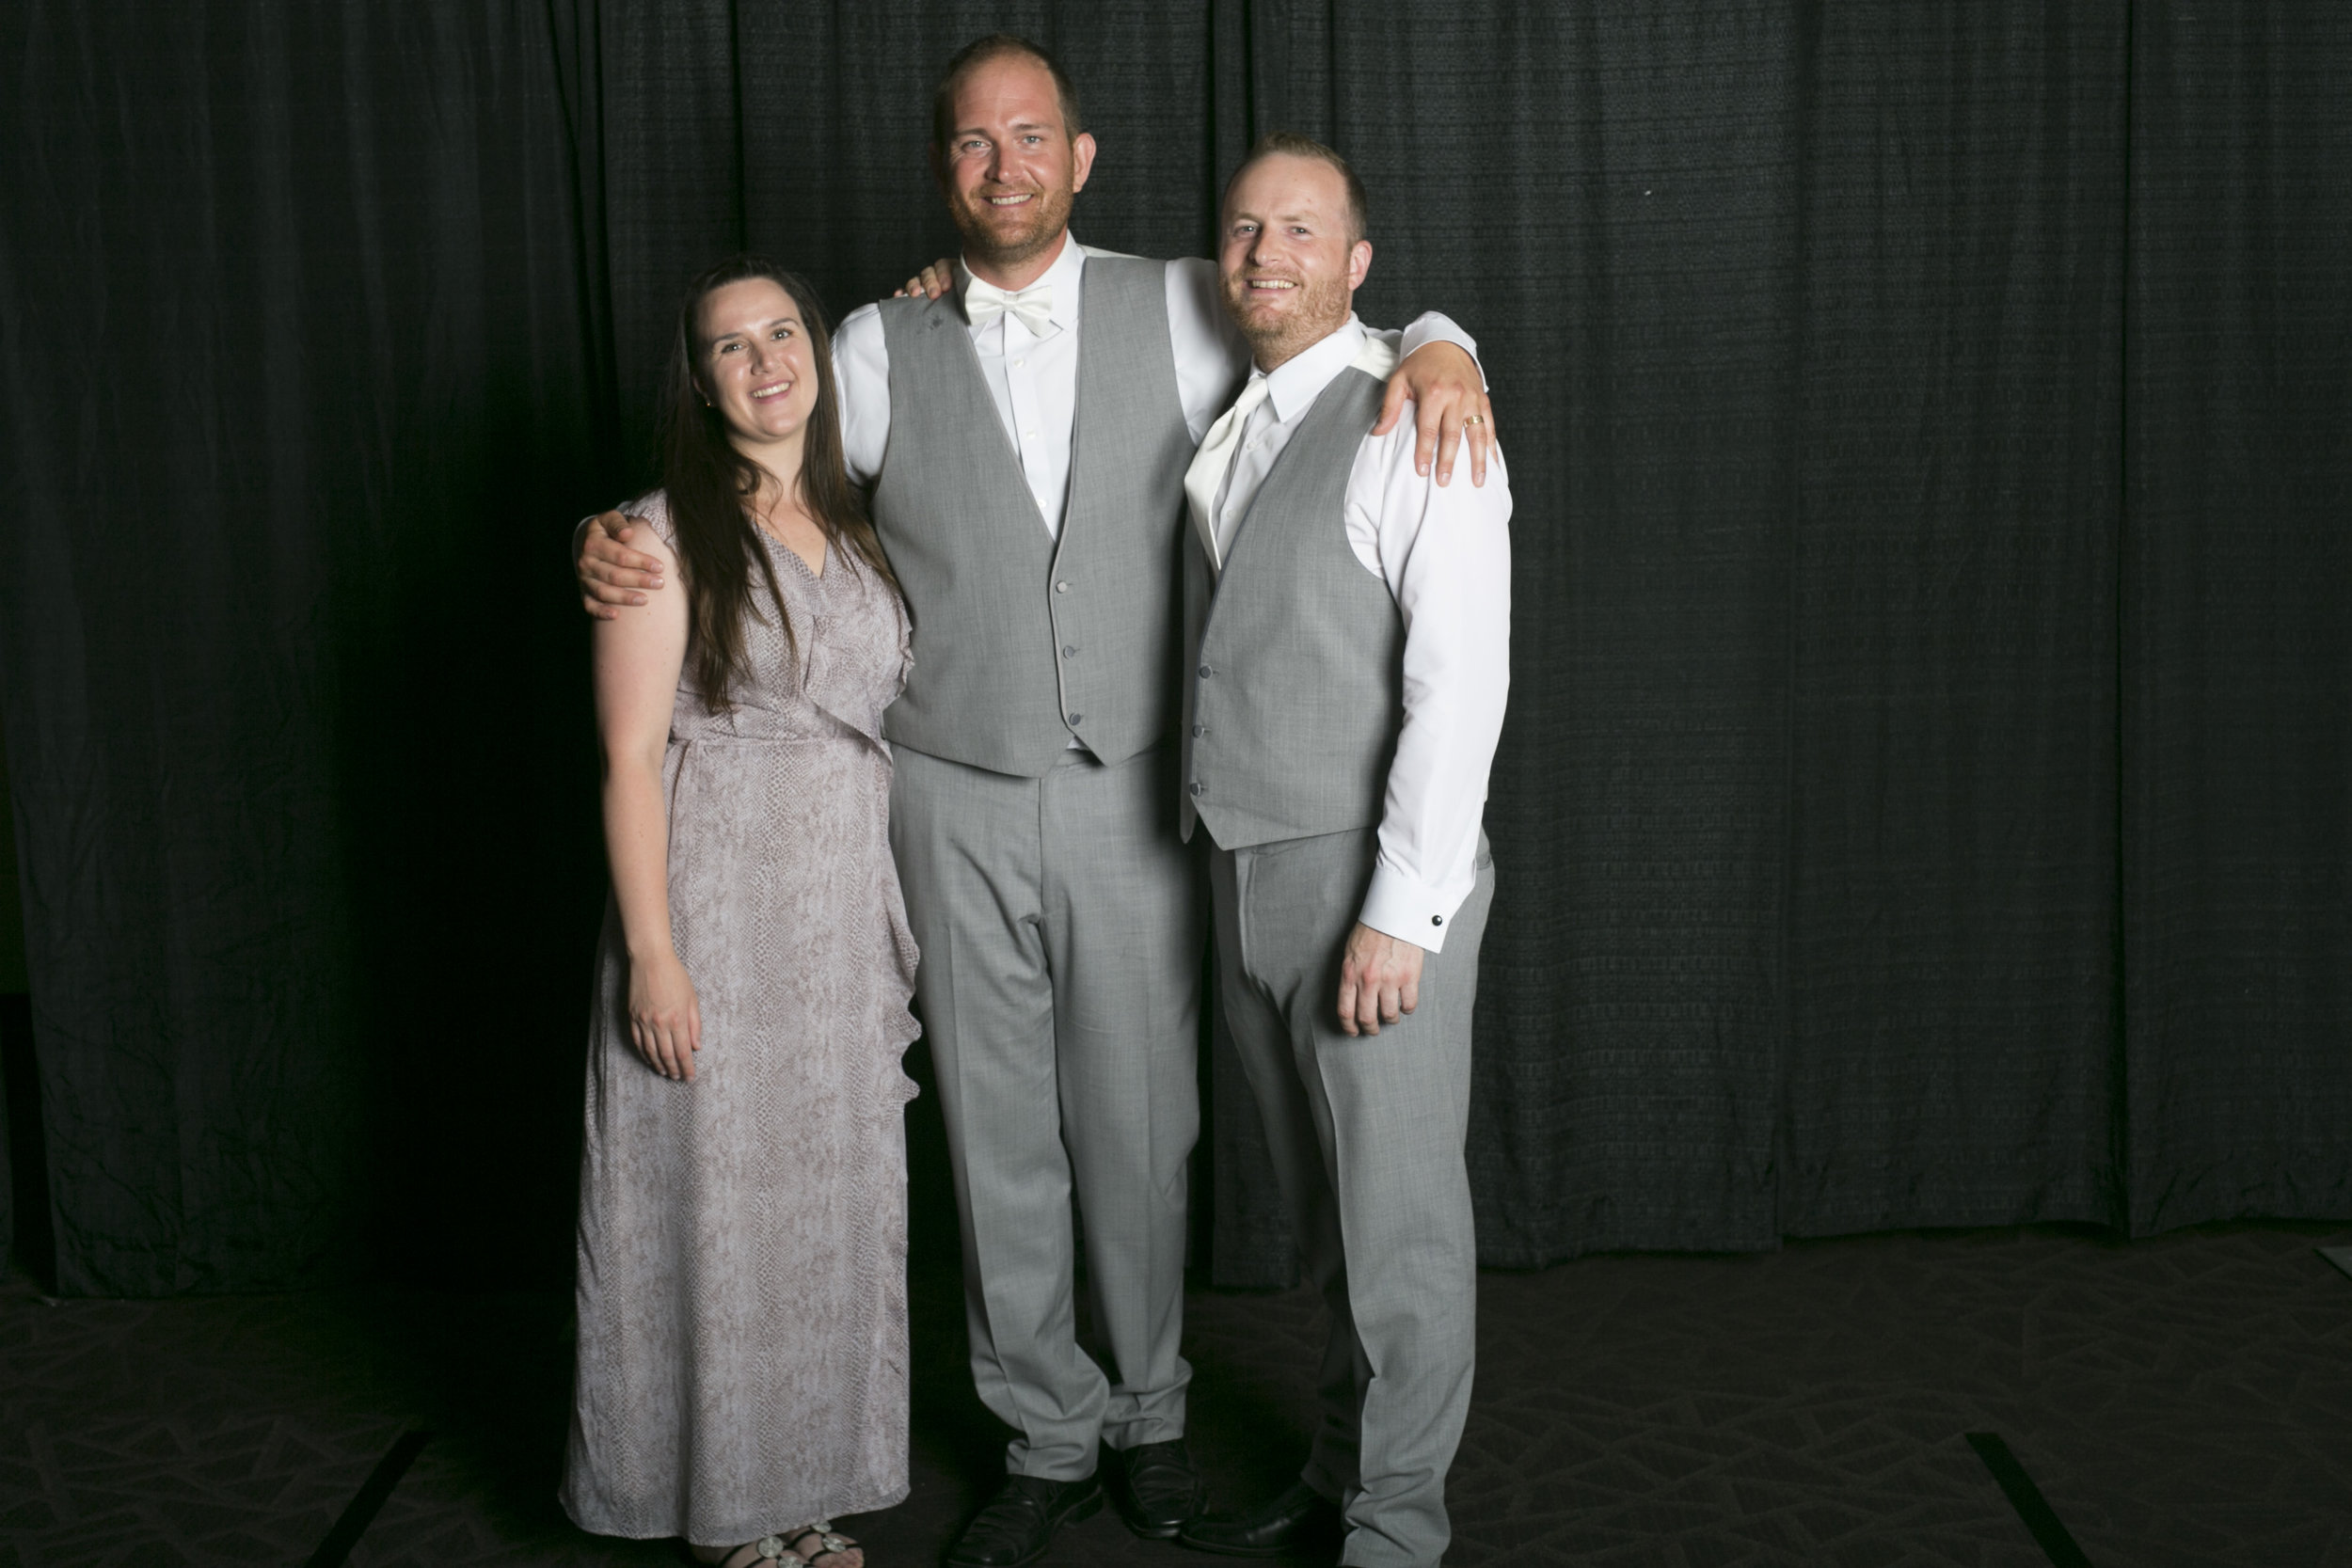 wedding photo booth-157.jpg